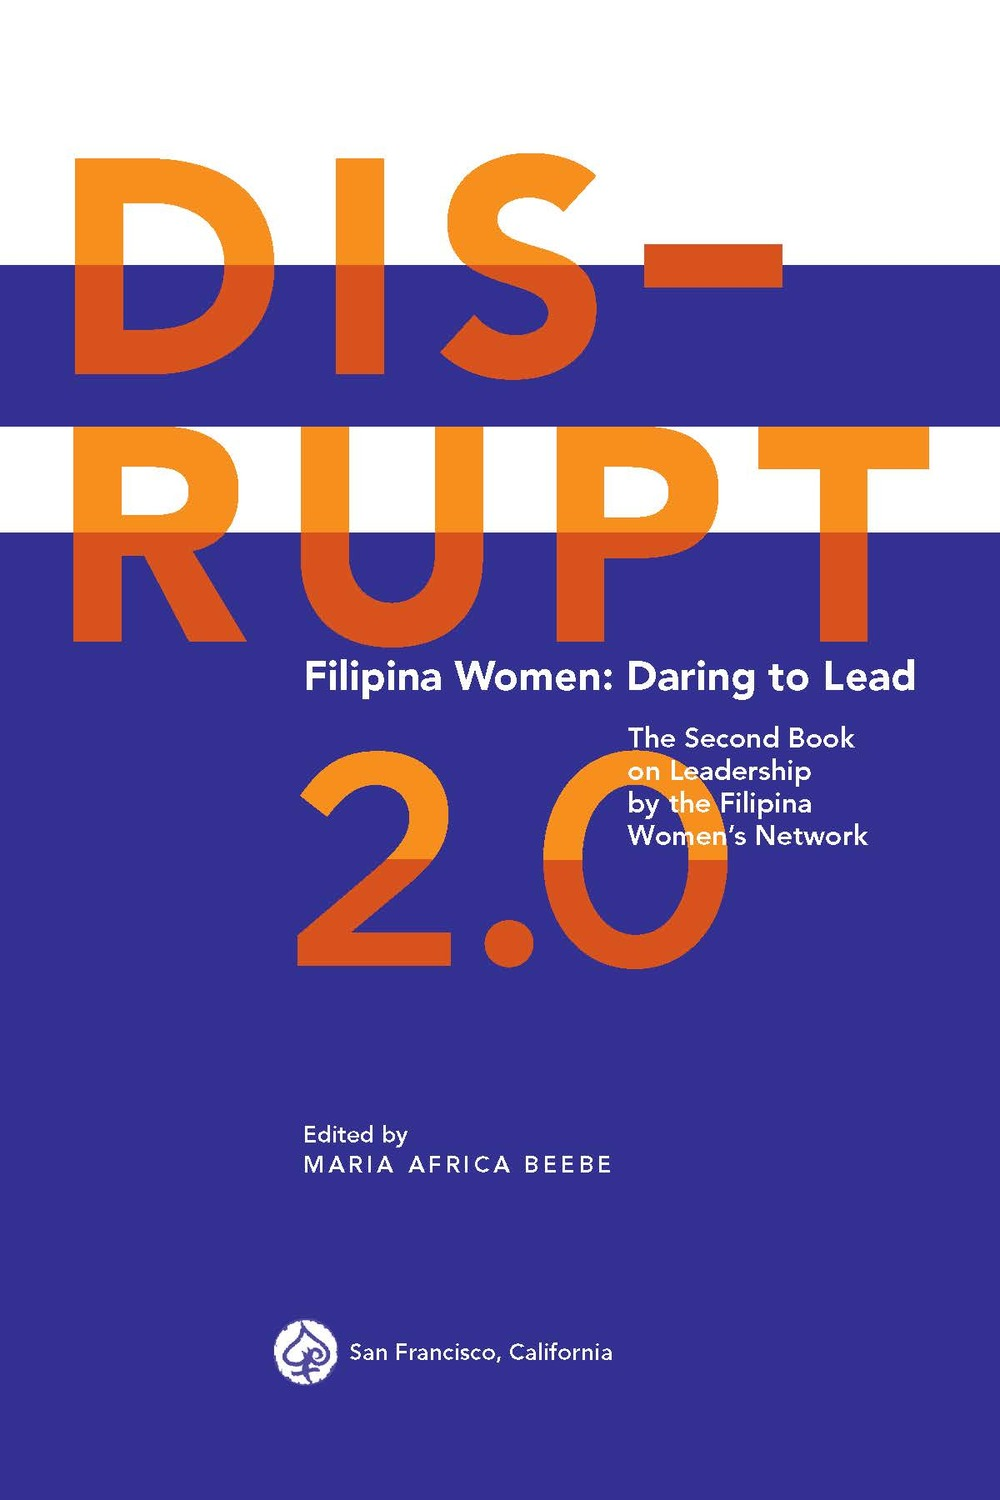 PRE-ORDER TODAY!DISRUPT 2.0. Filipina Women: Daring To Lead—the Filipina Women's Network's 2nd book on Filipina women leadership—will be launched during the 13th Annual Filipina Leadership Global Summit in Cebu on August 22, 2016sponsored by the University of Cebu and on August 26, 2016in Manila sponsored by the Asian Institute of Management. Book cover design by Lucille Lozada Tenazas, Global FWN100 '13 and Henry Wolf Professor of Communication Design & Associate Dean of Art, Media and Technology, Parsons The New School for Design